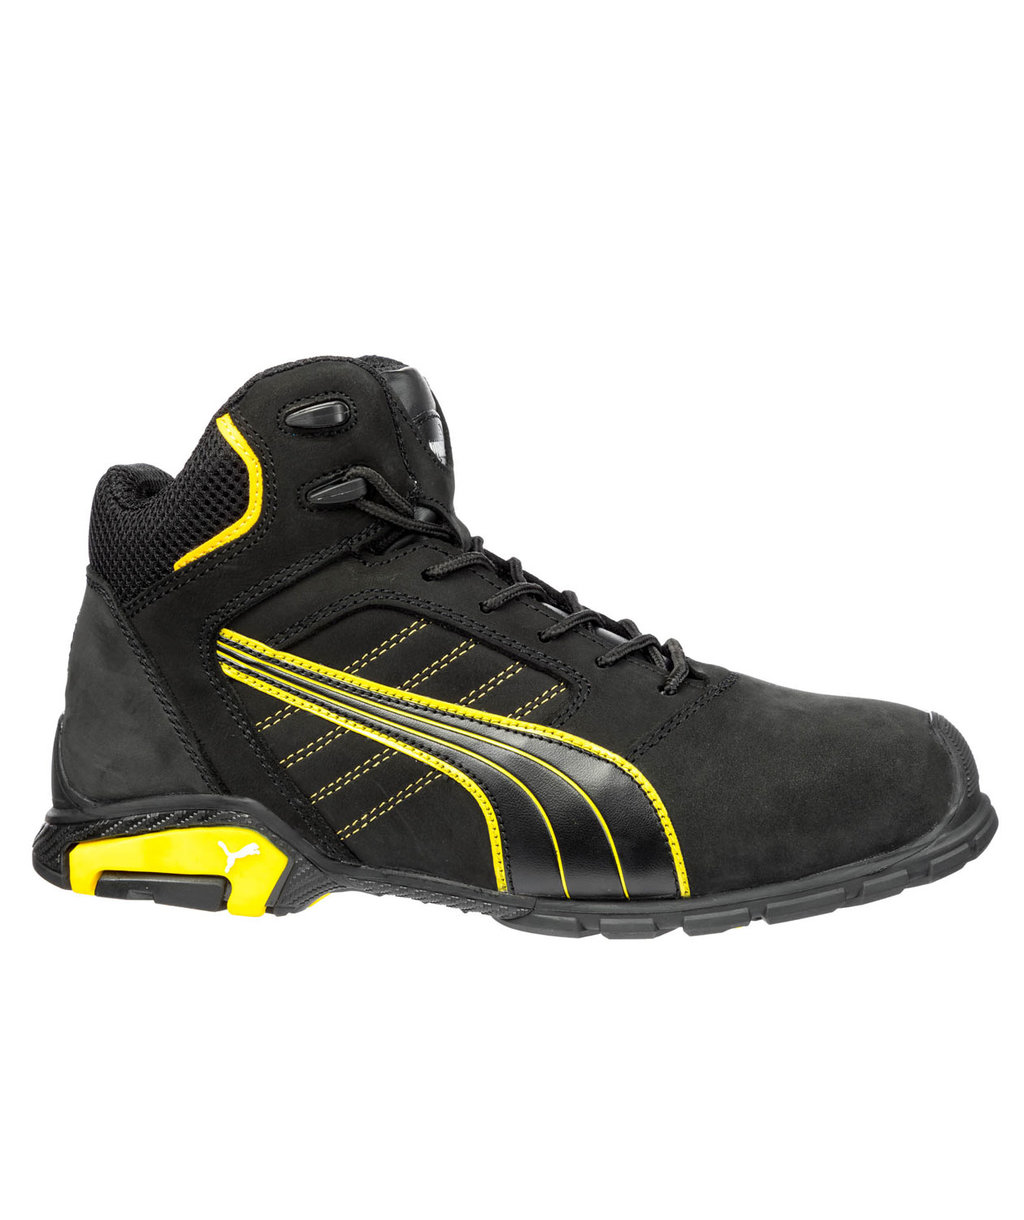 Puma Amsterdam Mid safety bootees S3, Black/Yellow